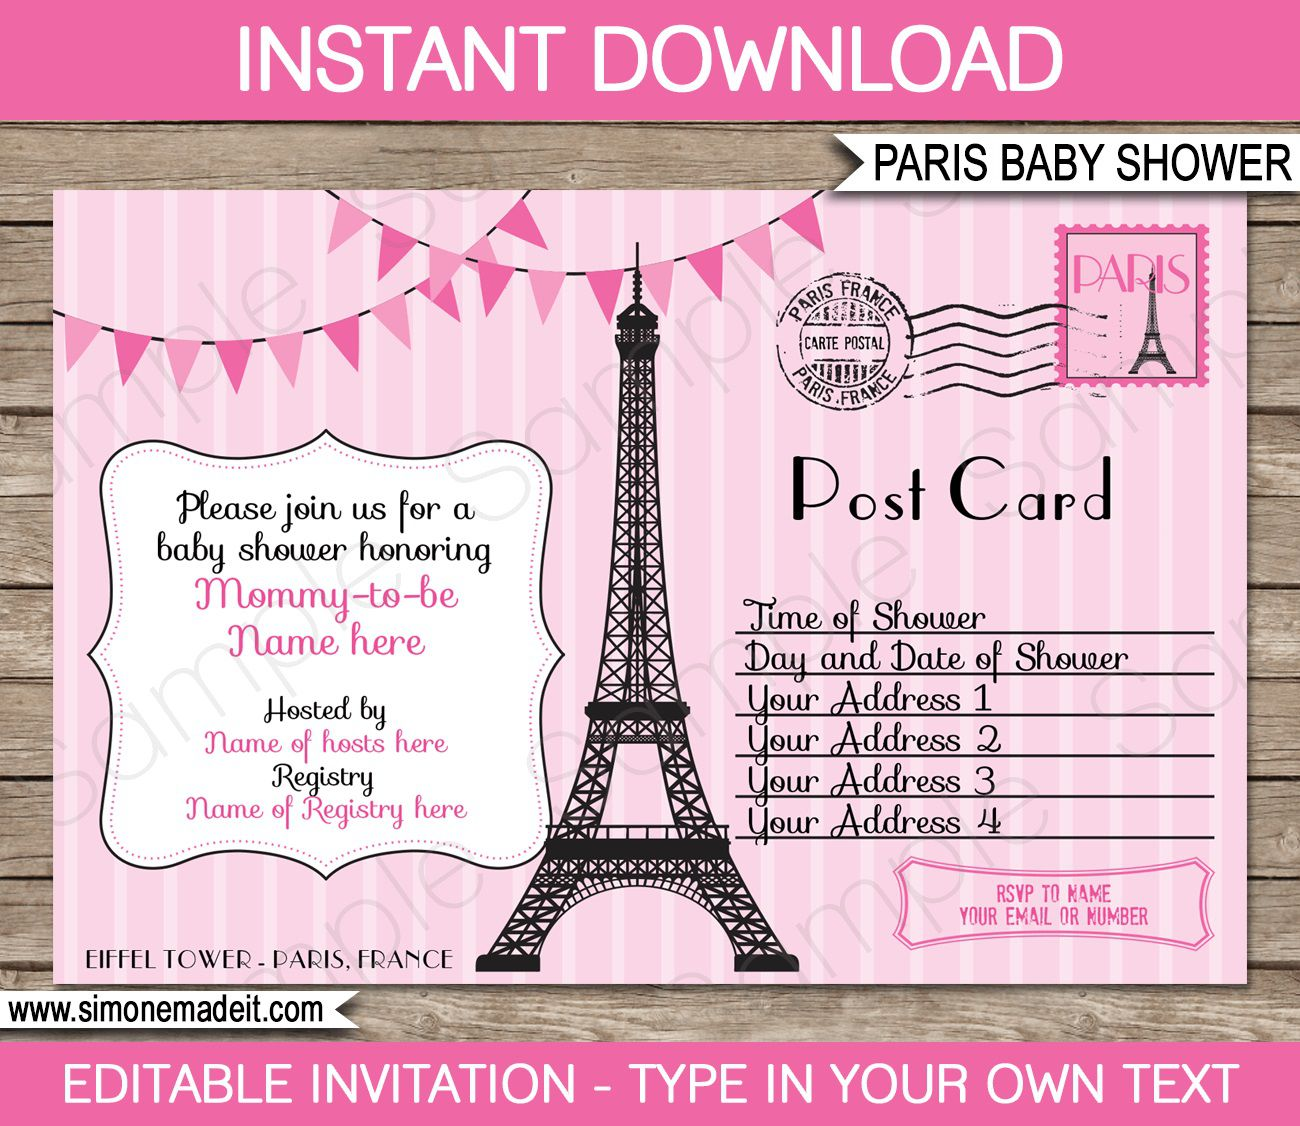 008 Stupendou Baby Shower Invitation Template Editable High Definition  Free Surprise In Gujarati TwinFull